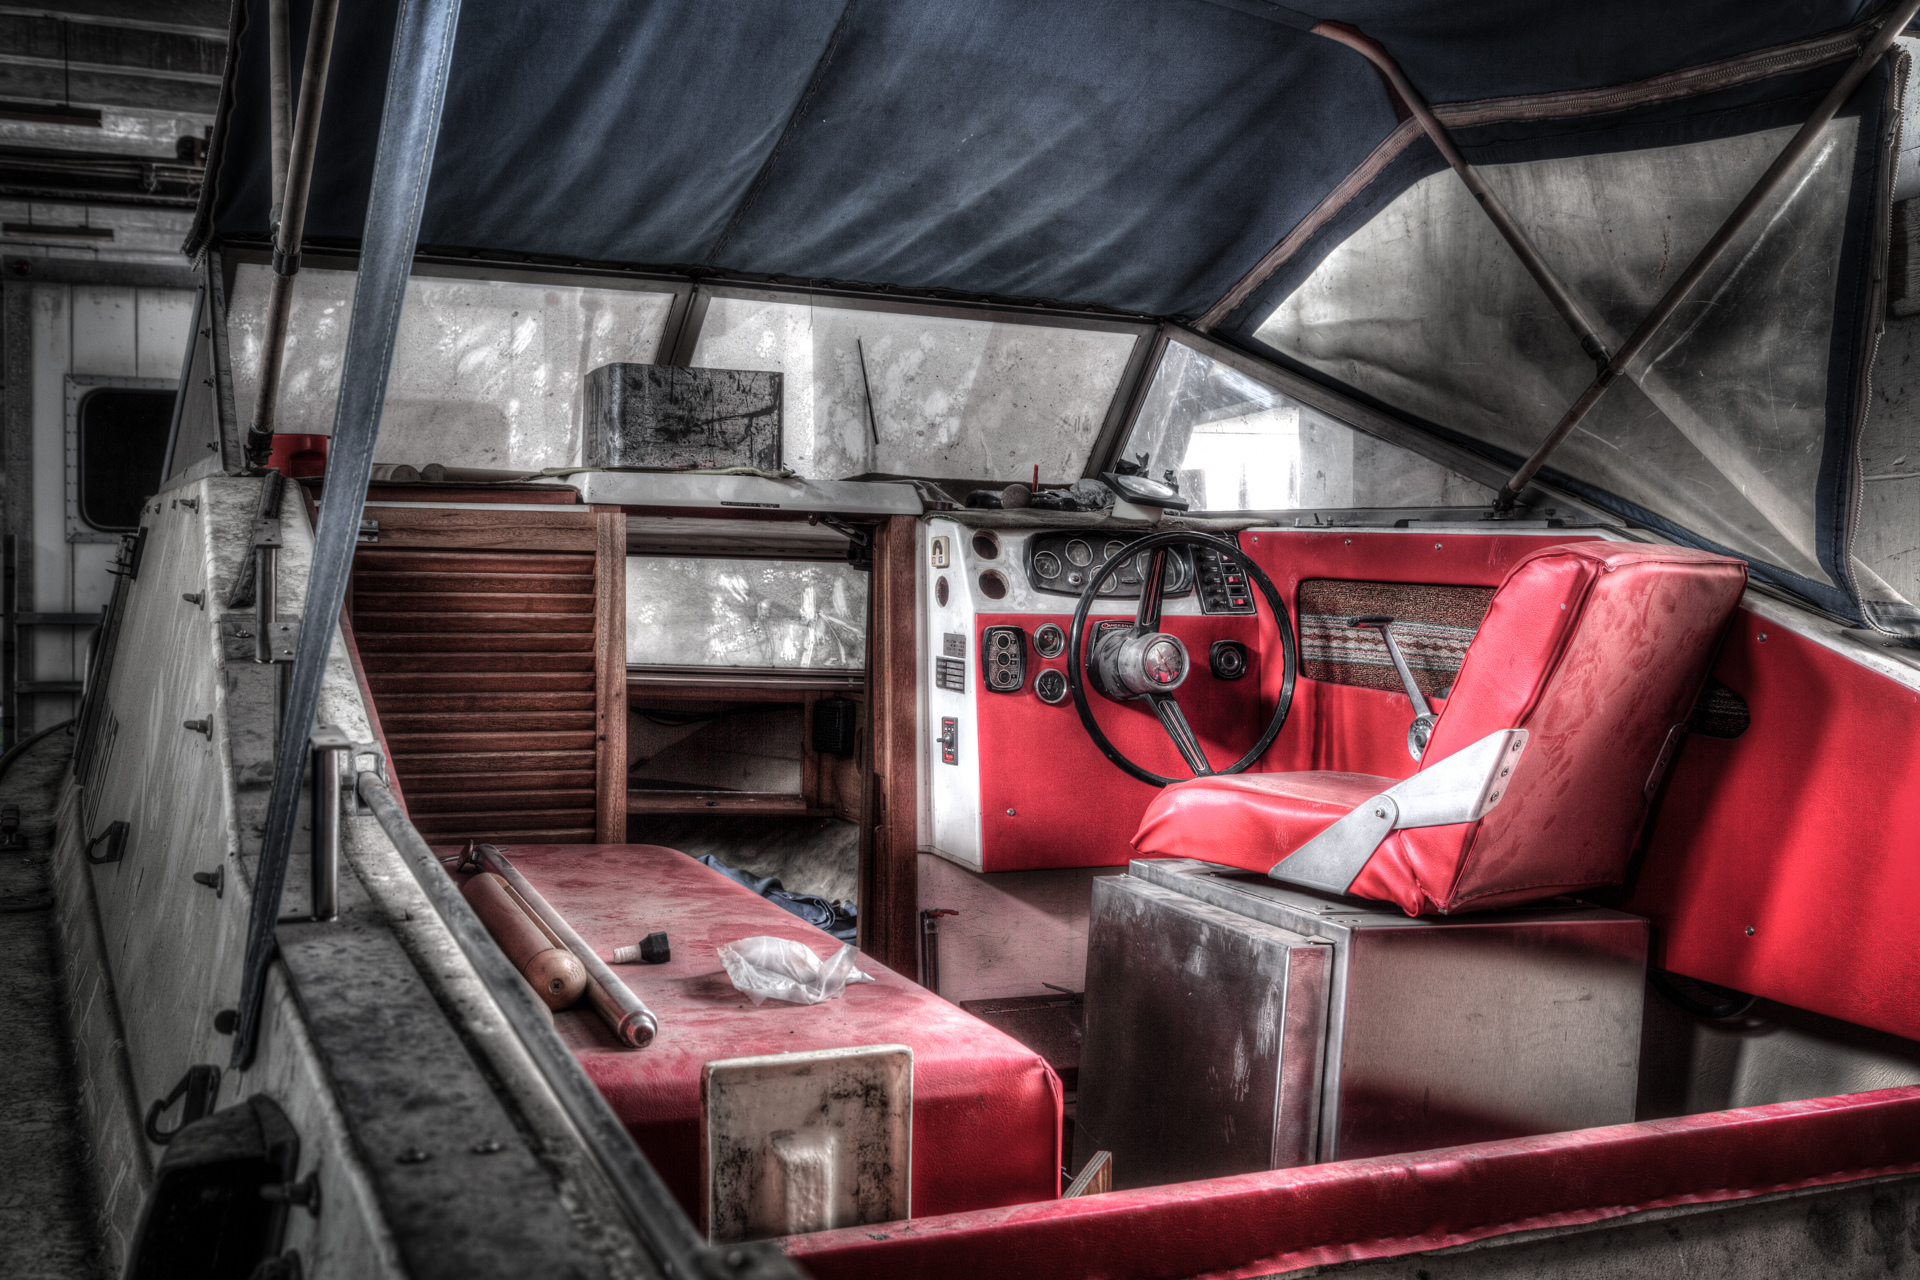 Urban Exploration - Villa Vehicle - At Anchor